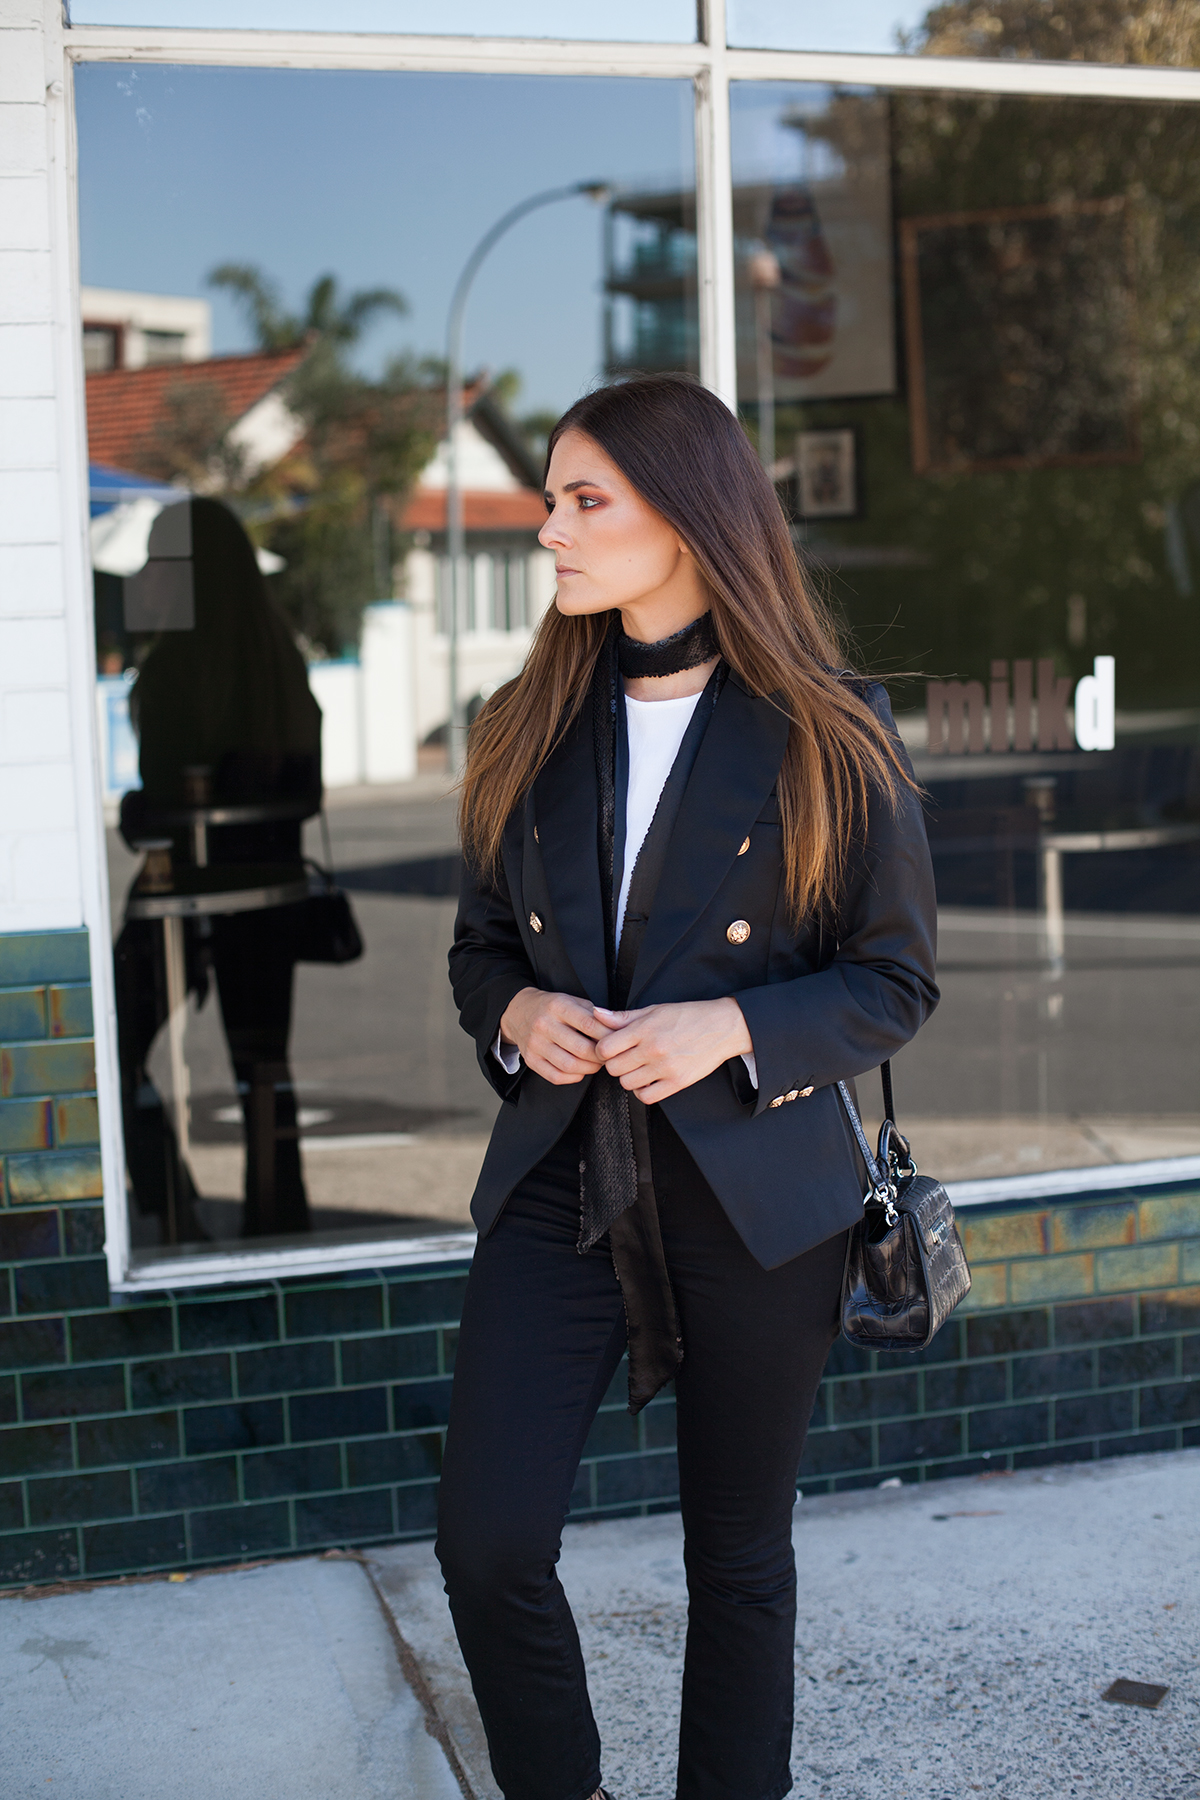 Bohemian Traders double breasted blazer, crop jeans and fishnets all black outfit Inspiring Wit fashion blog